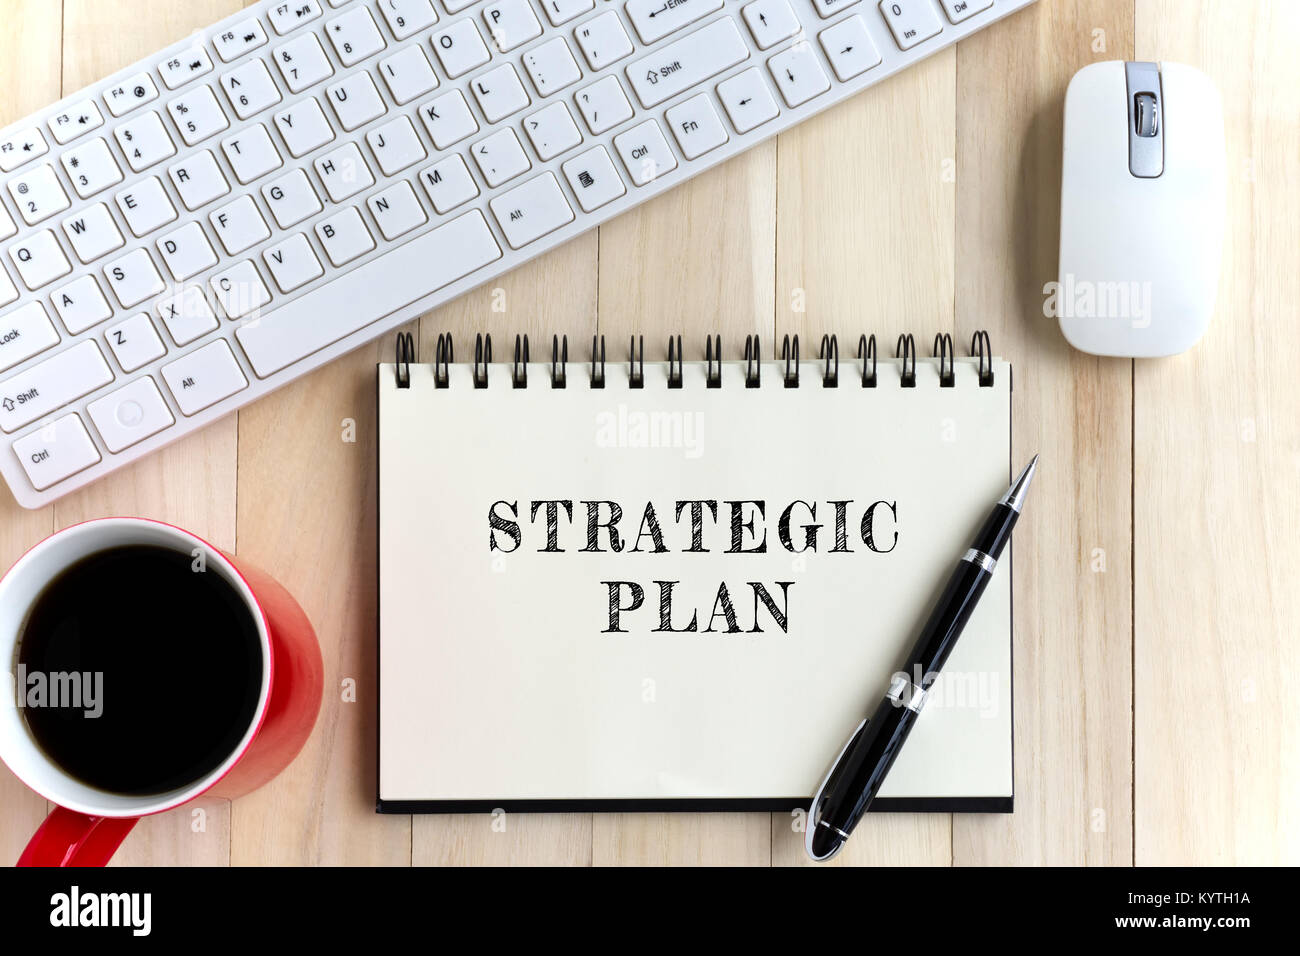 Top view of office desk and notepad with word - Strategic plan. Business concept. - Stock Image